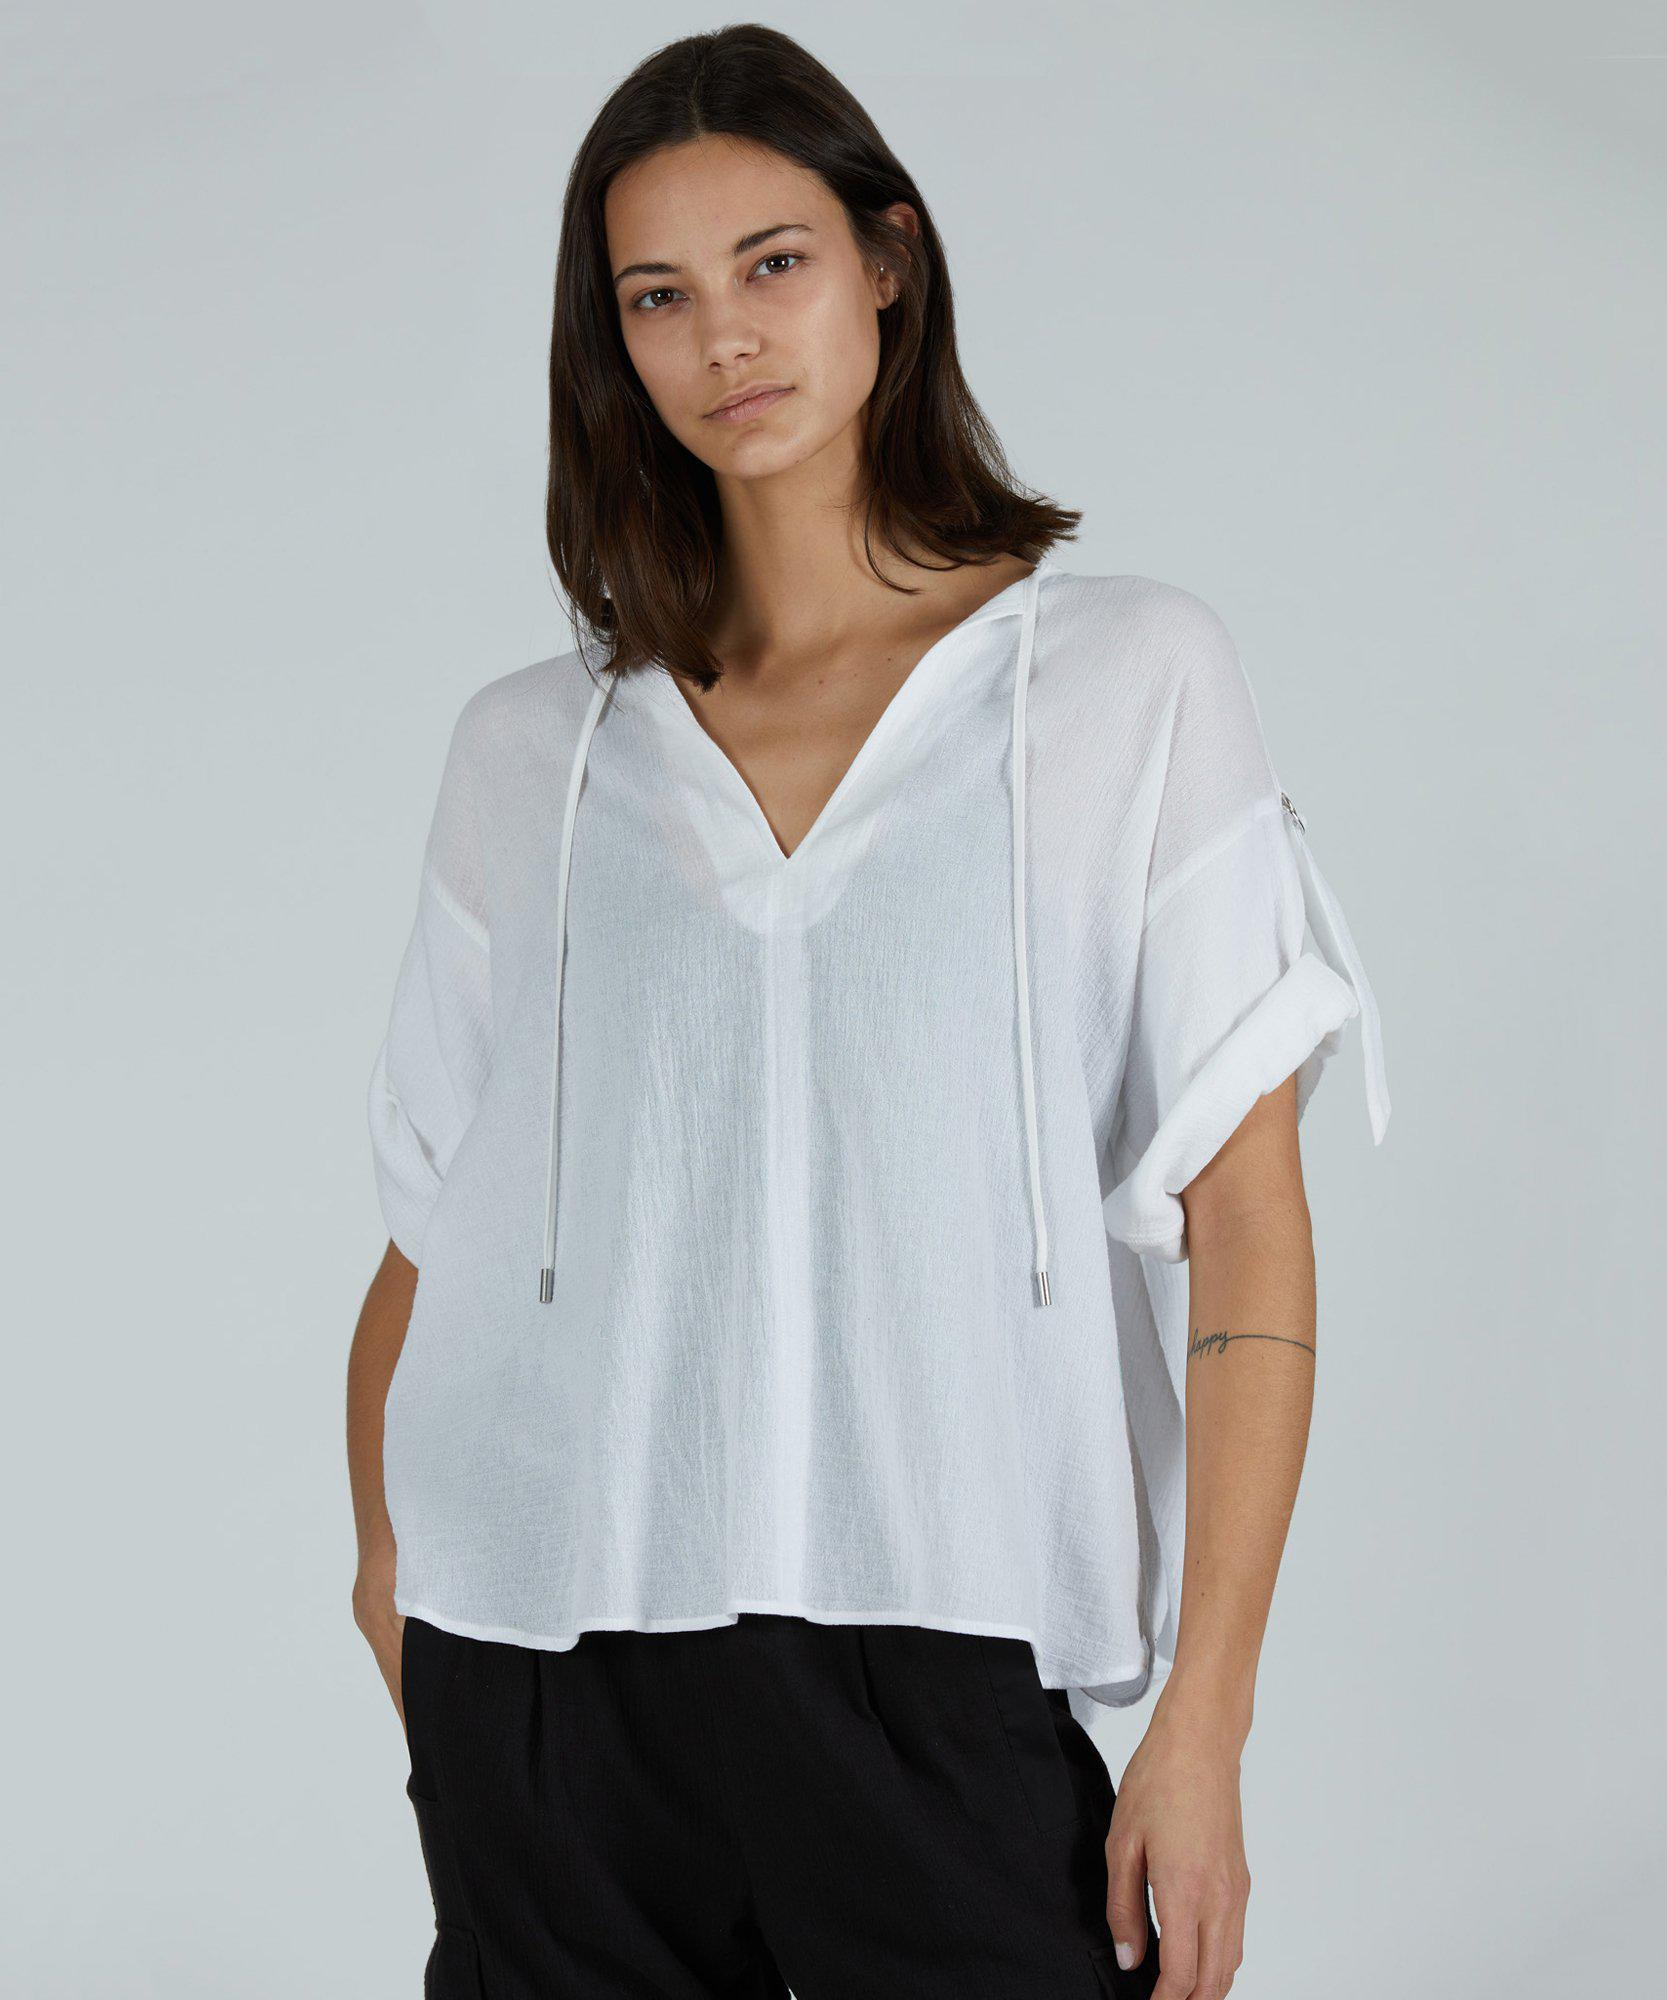 Cotton Gauze Rolled Sleeve Top - White